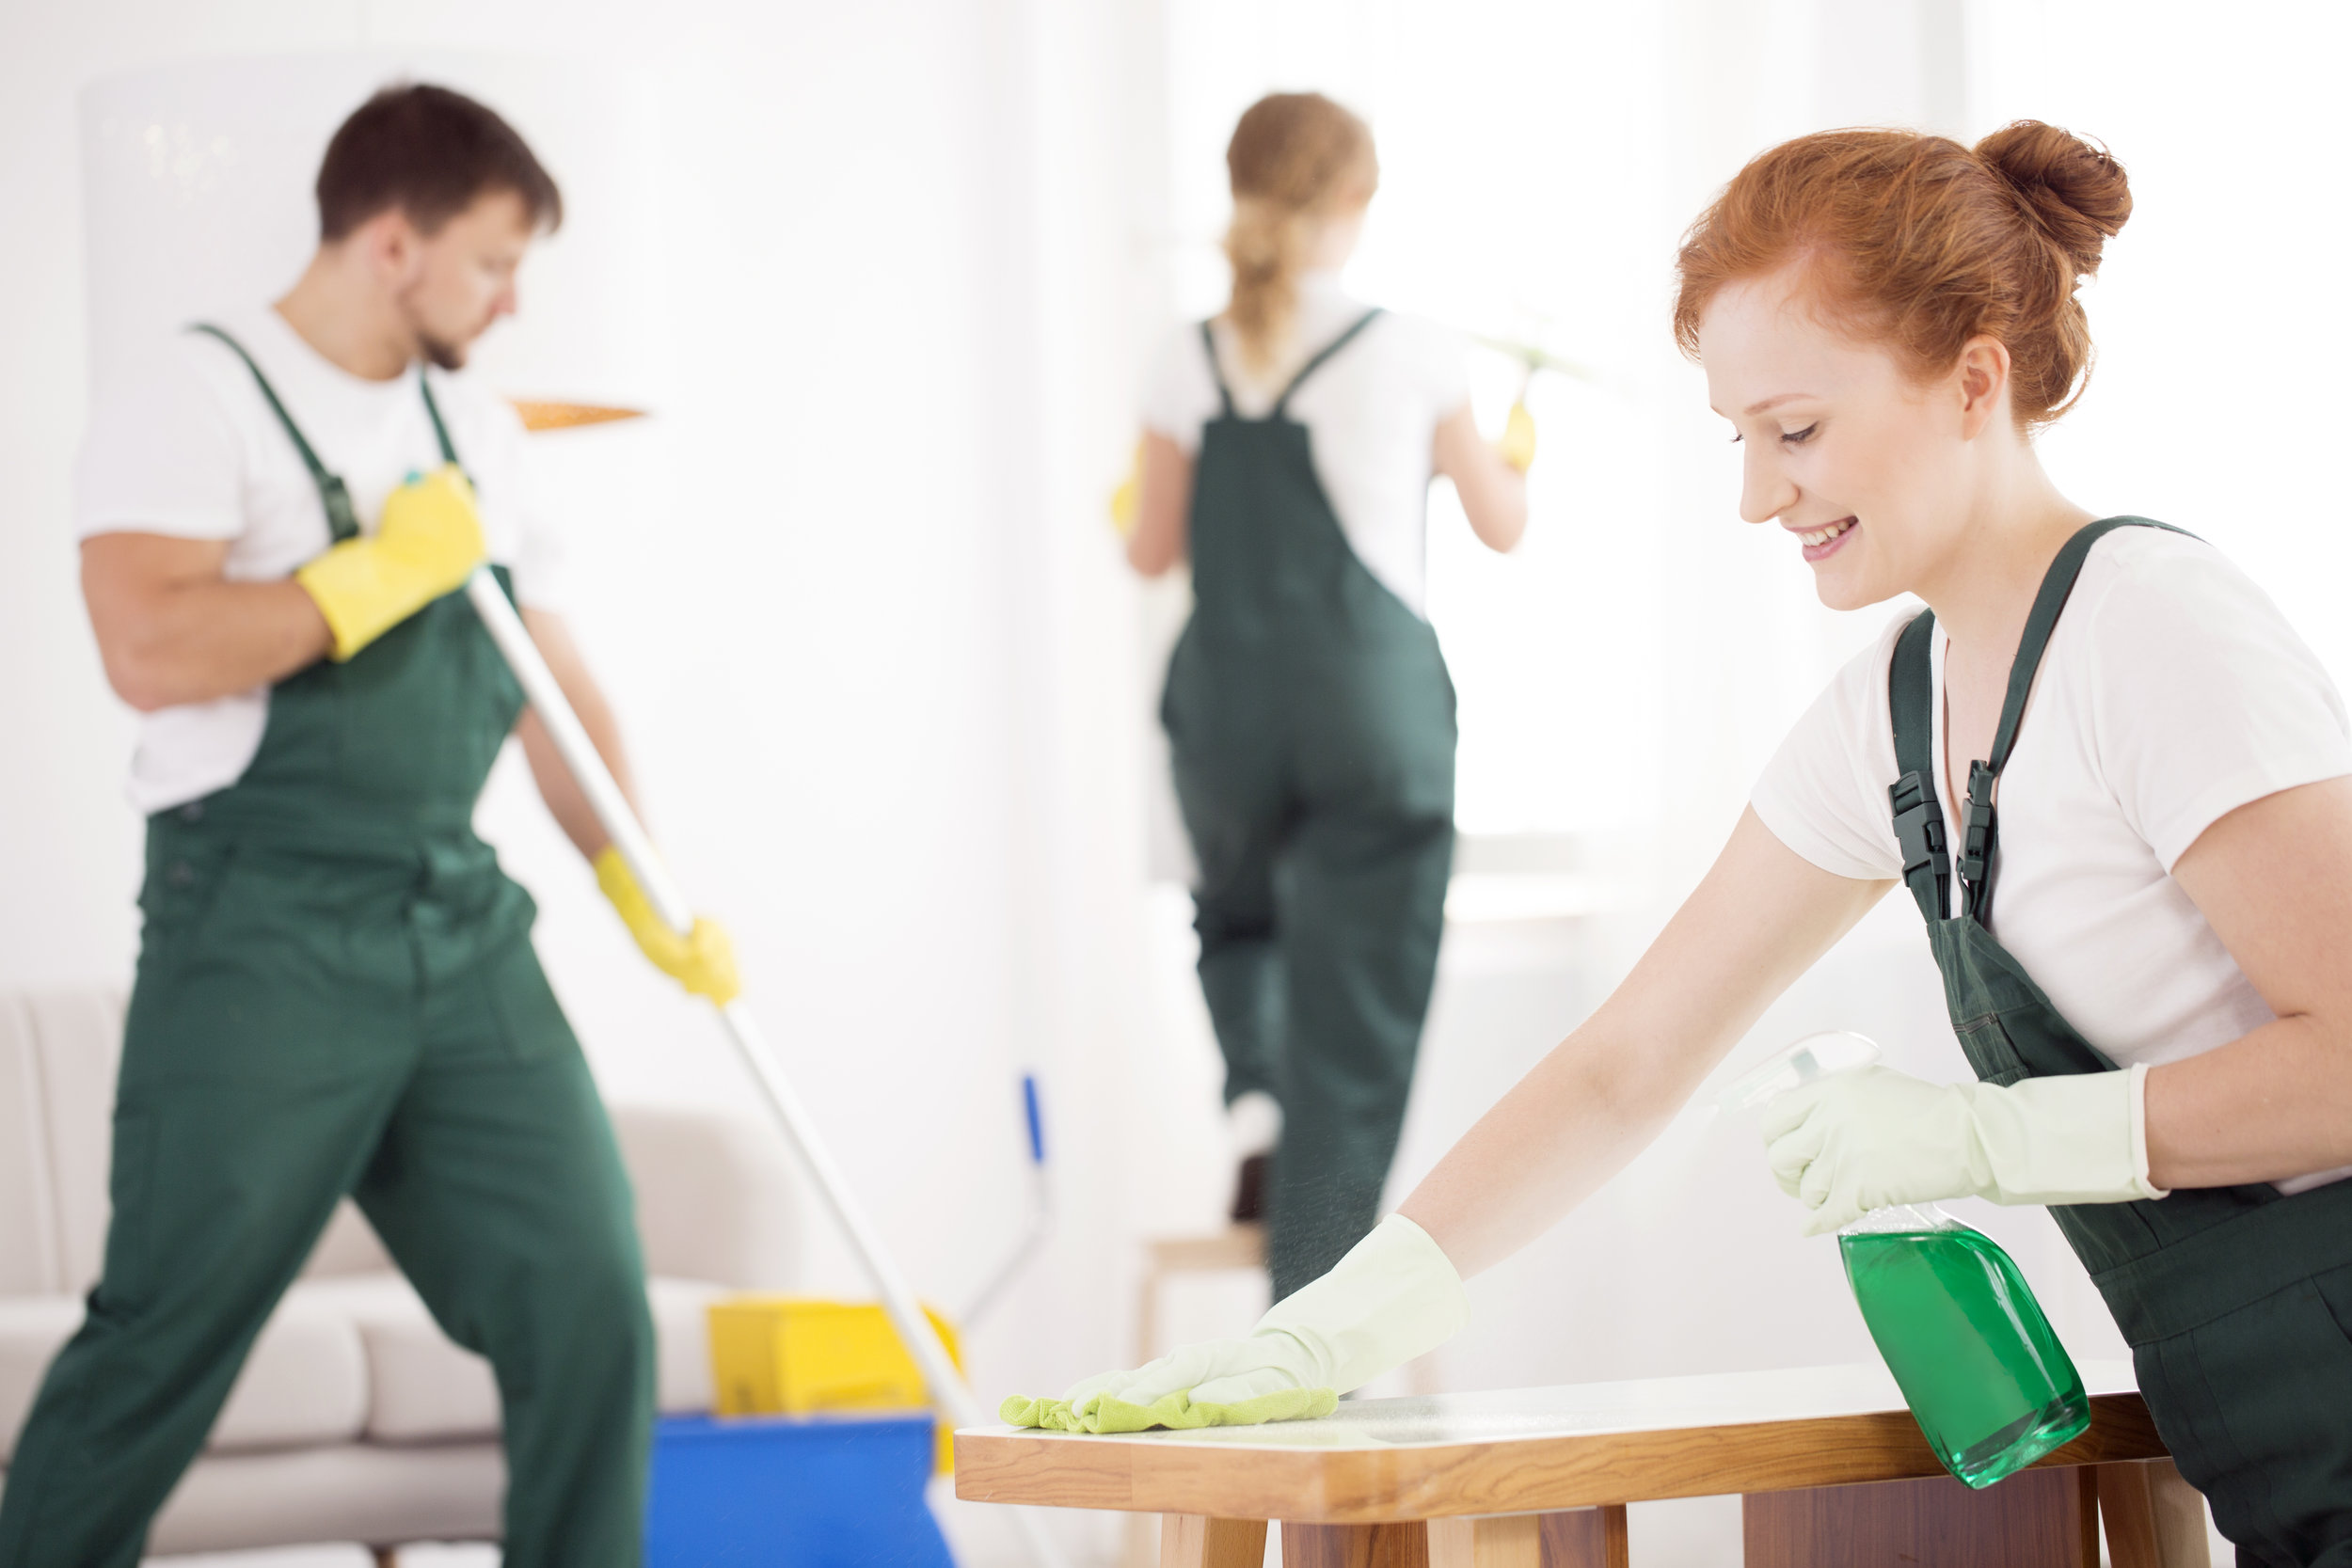 cleaning-service-during-work-PPTAZG5.jpg